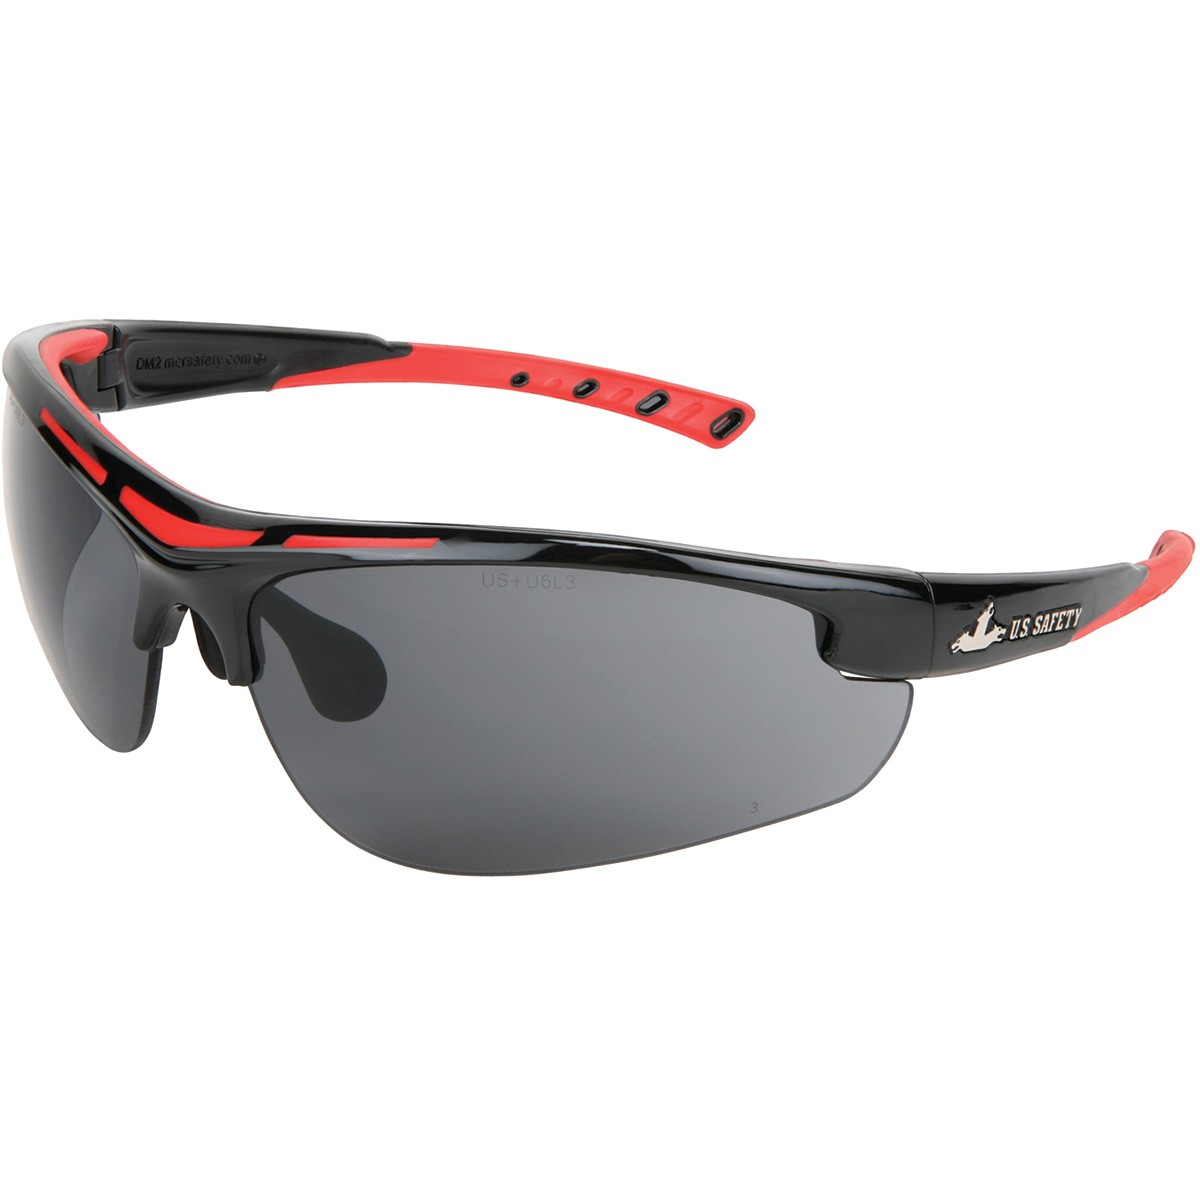 Dominator 2 - Gray MAX3 Anti-Scratch Lens Safety Glasses- DM1222P